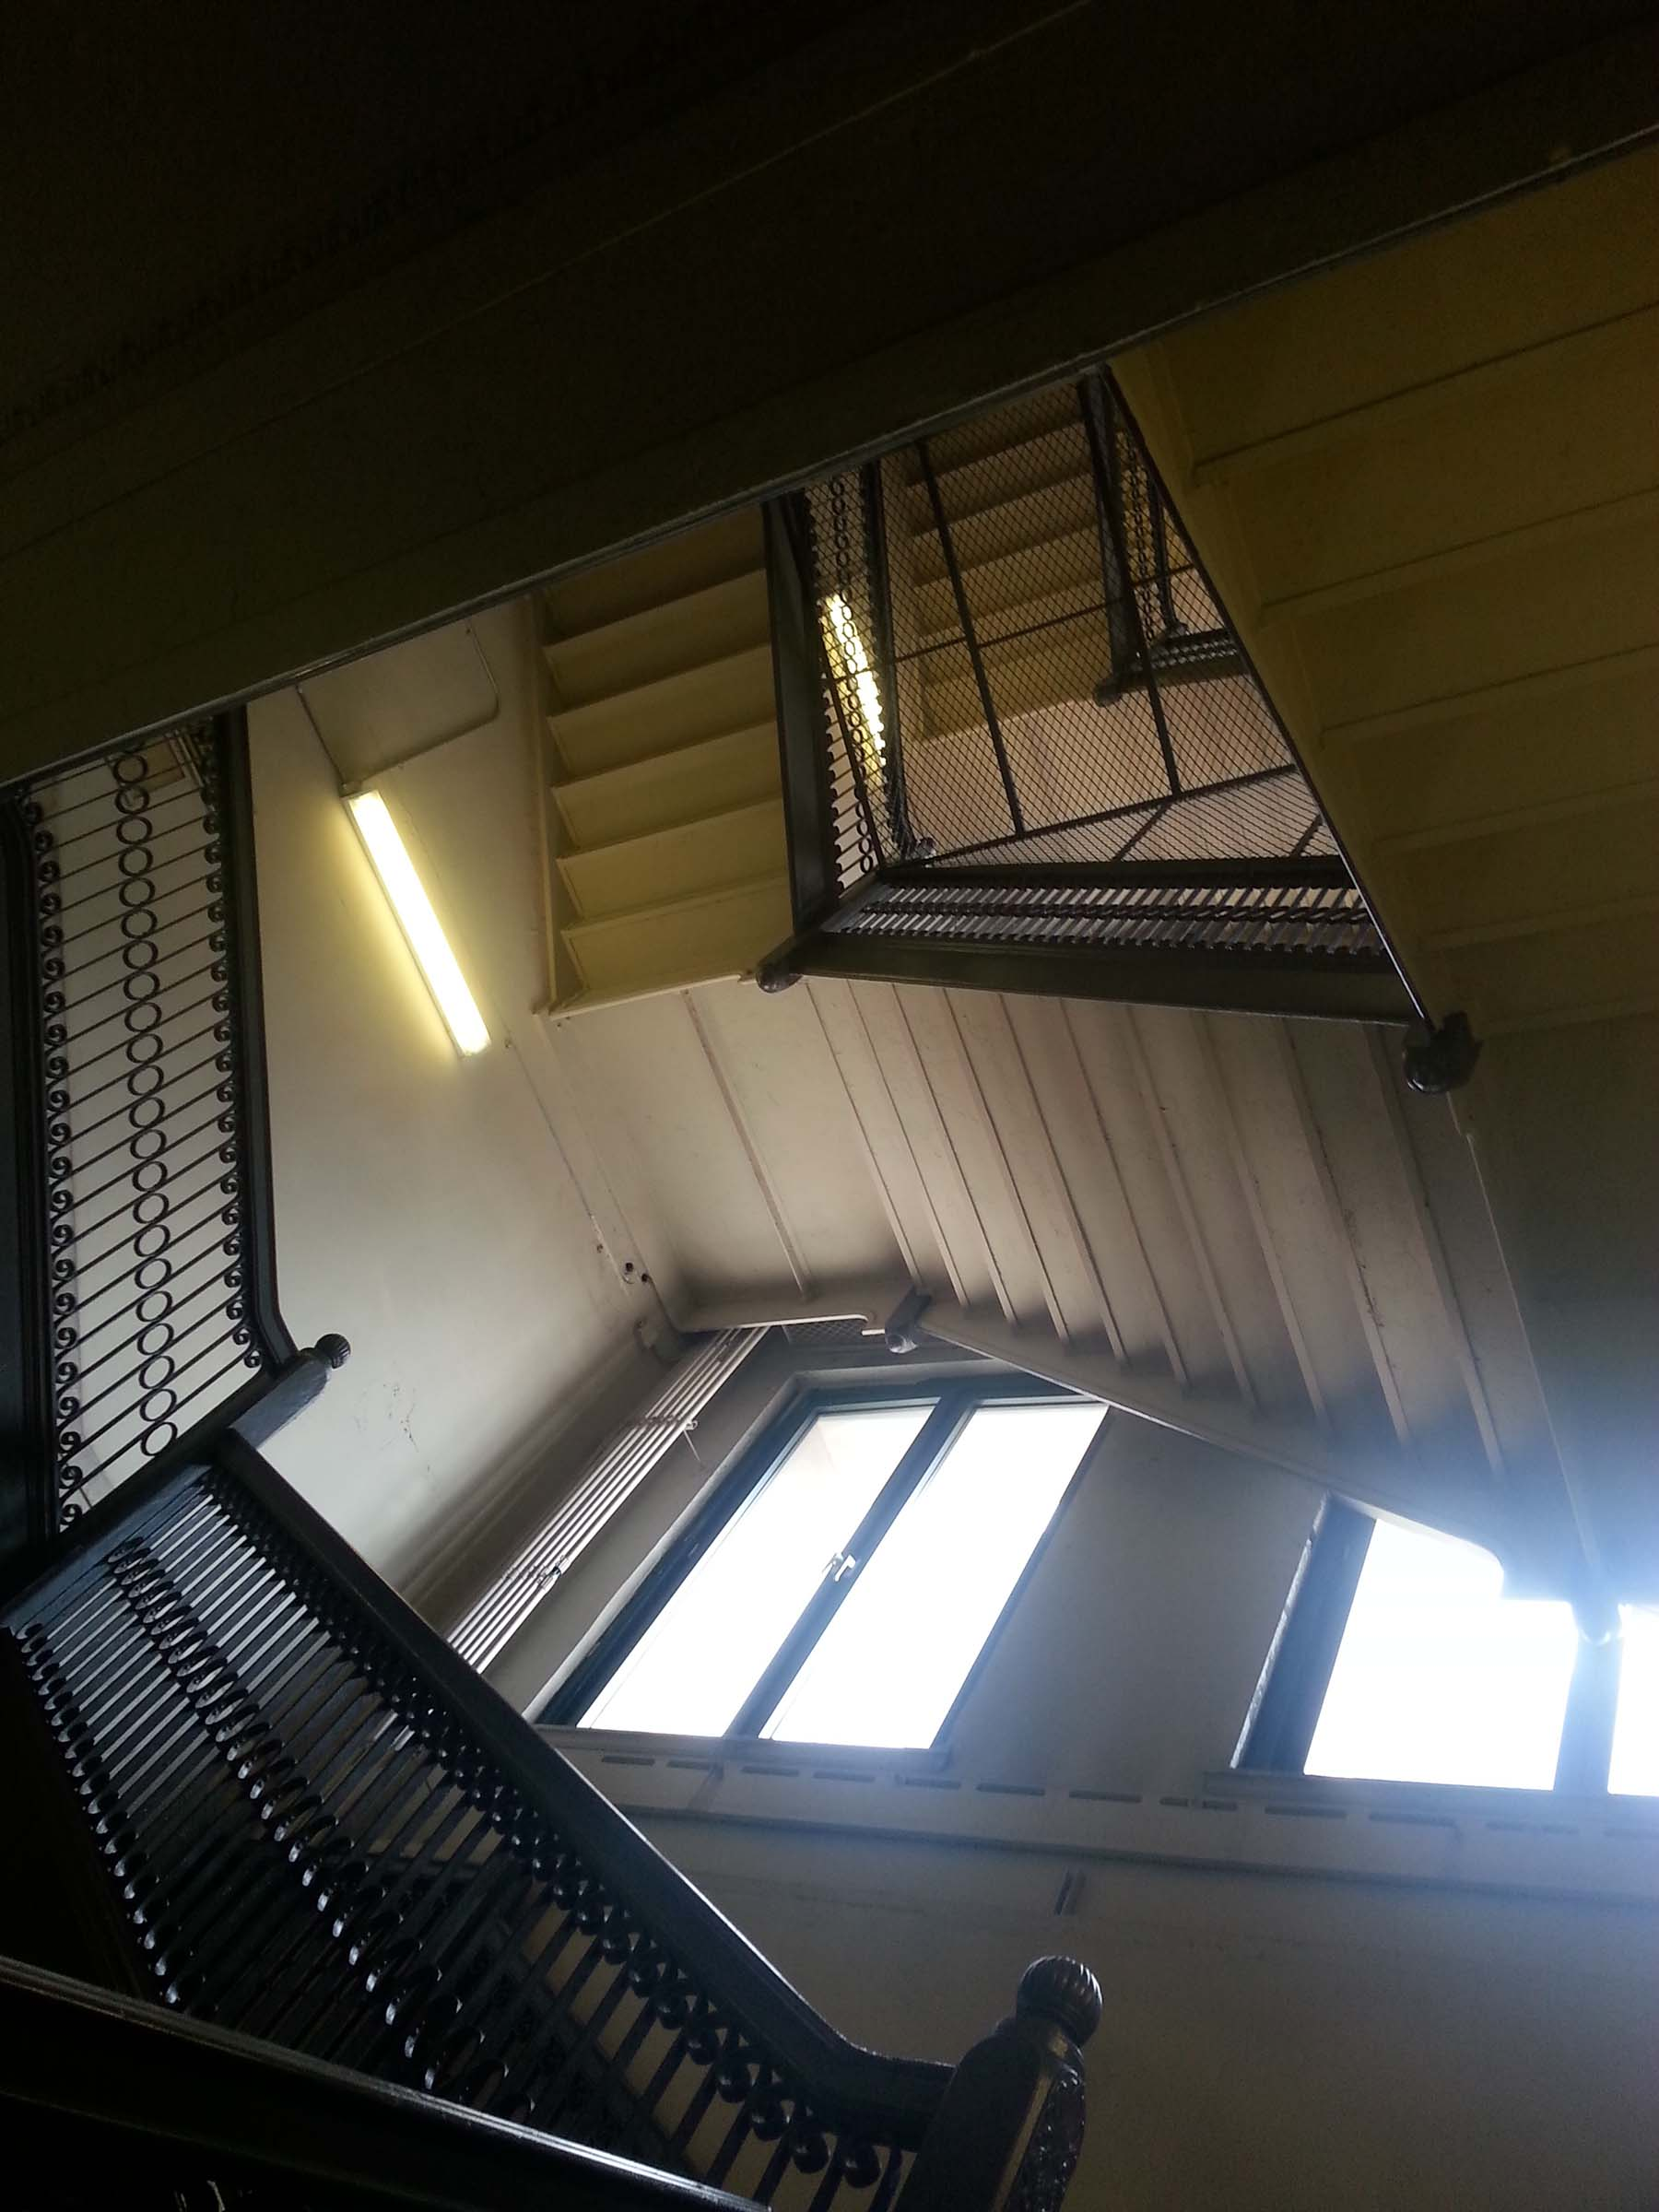 Photo looking upwards through a building stairwell, which spirals down a rectangular shaft, lit by daylight from large windows.